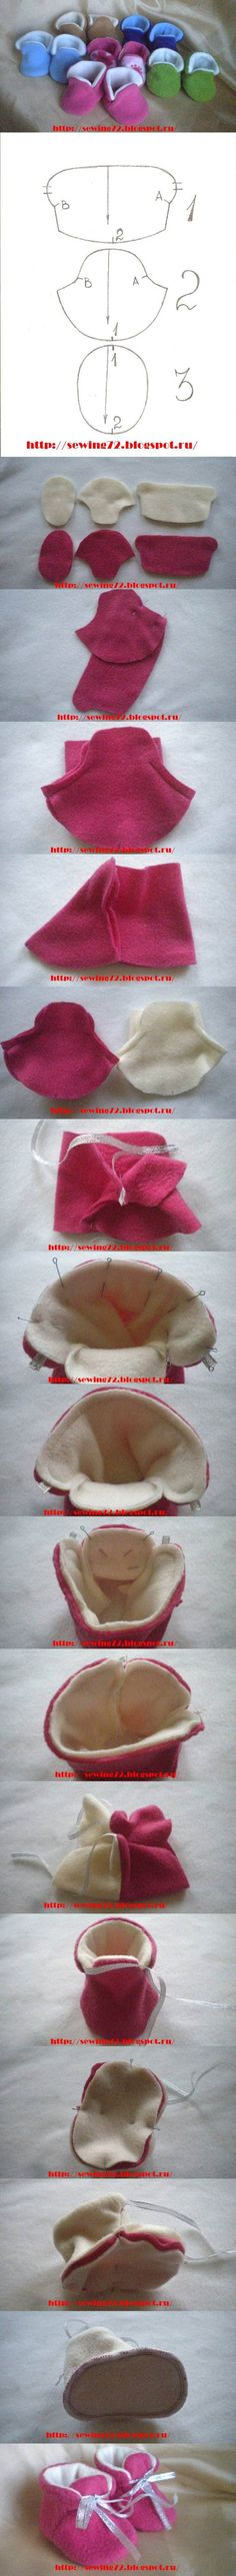 DIY Fleece Booties diy sew craft crafts sewing how to tutorial diy craft sewing tutorials Fabric Crafts, Sewing Crafts, Sewing Projects, Diy Projects, Fleece Projects, Baby Patterns, Doll Patterns, Sewing Patterns, Crochet Patterns